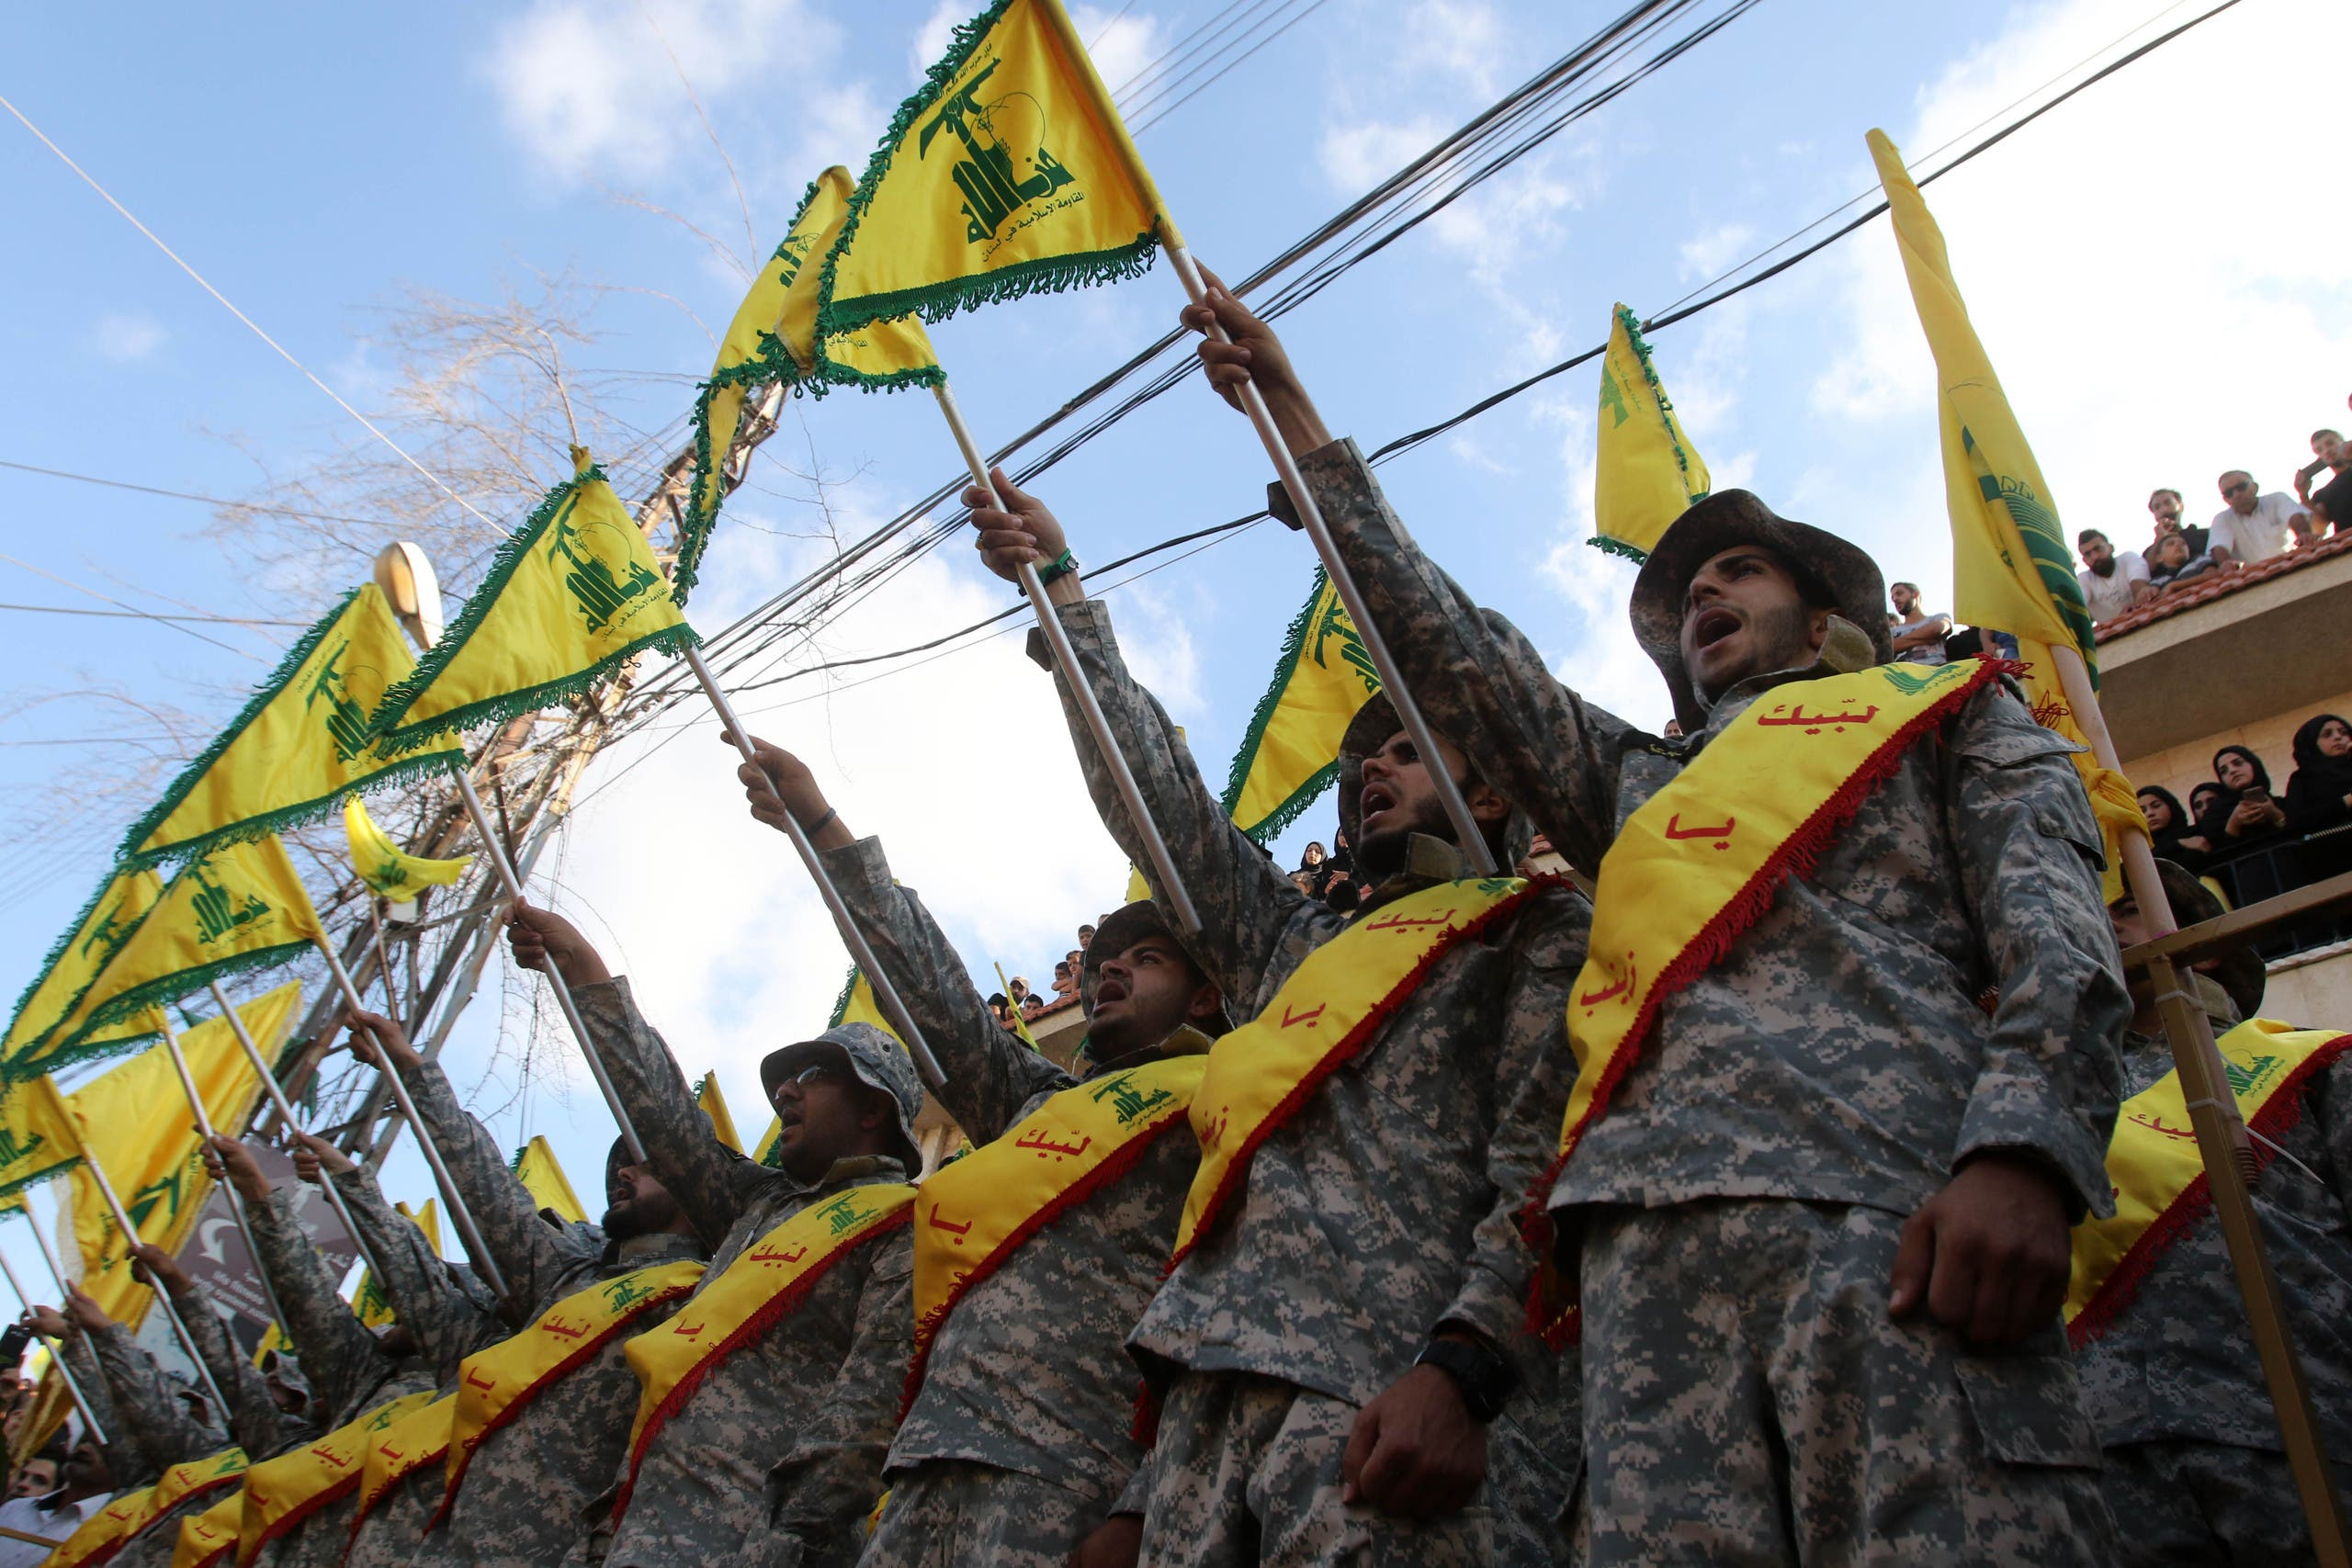 Members of Lebanon's Shiite Hezbollah movement stand at attention during the funeral of a fighter, who was killed in conflict against militant groups in the mountainous area around the Lebanese town of Arsal on the eastern border with war-ravaged Syria, in the southern town of Bisariyeh on August 28, 2017. (File photo: Reuters)